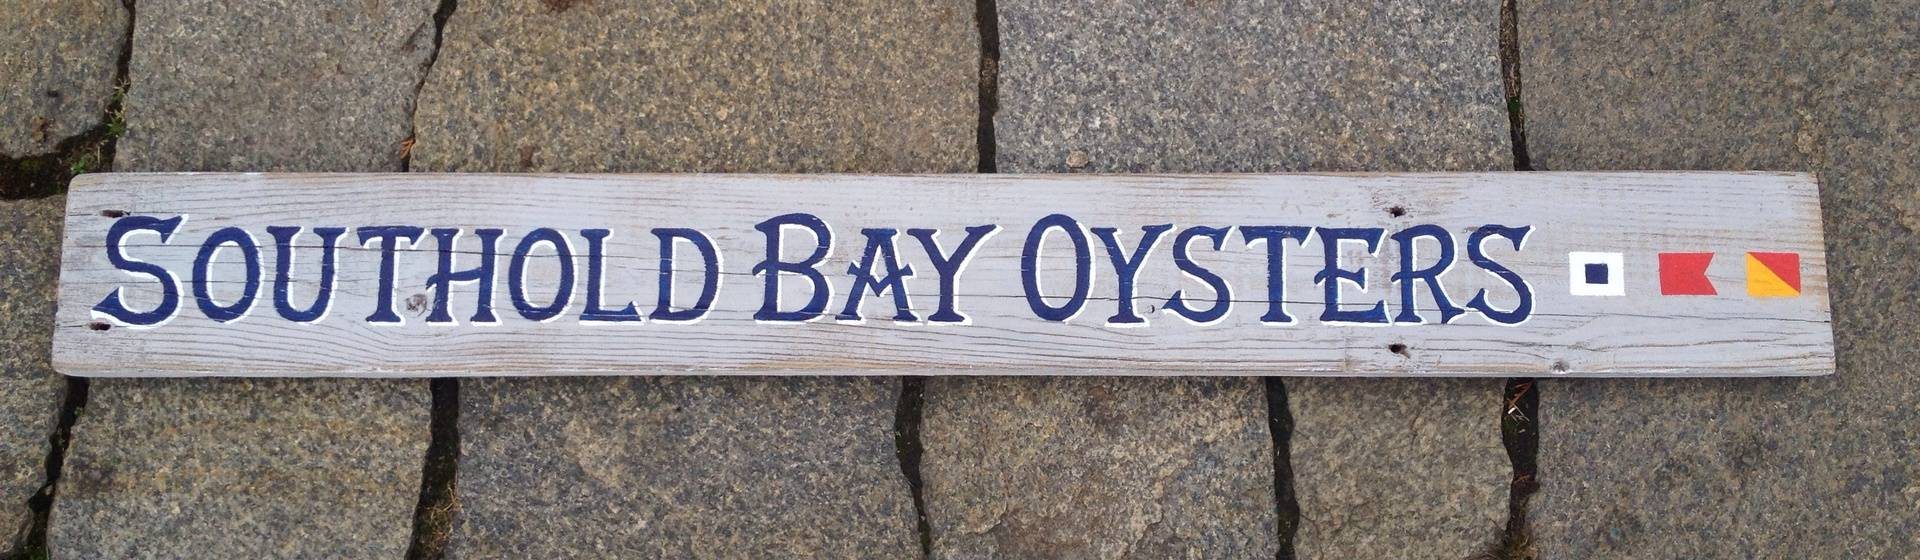 Southold Bay Oysters